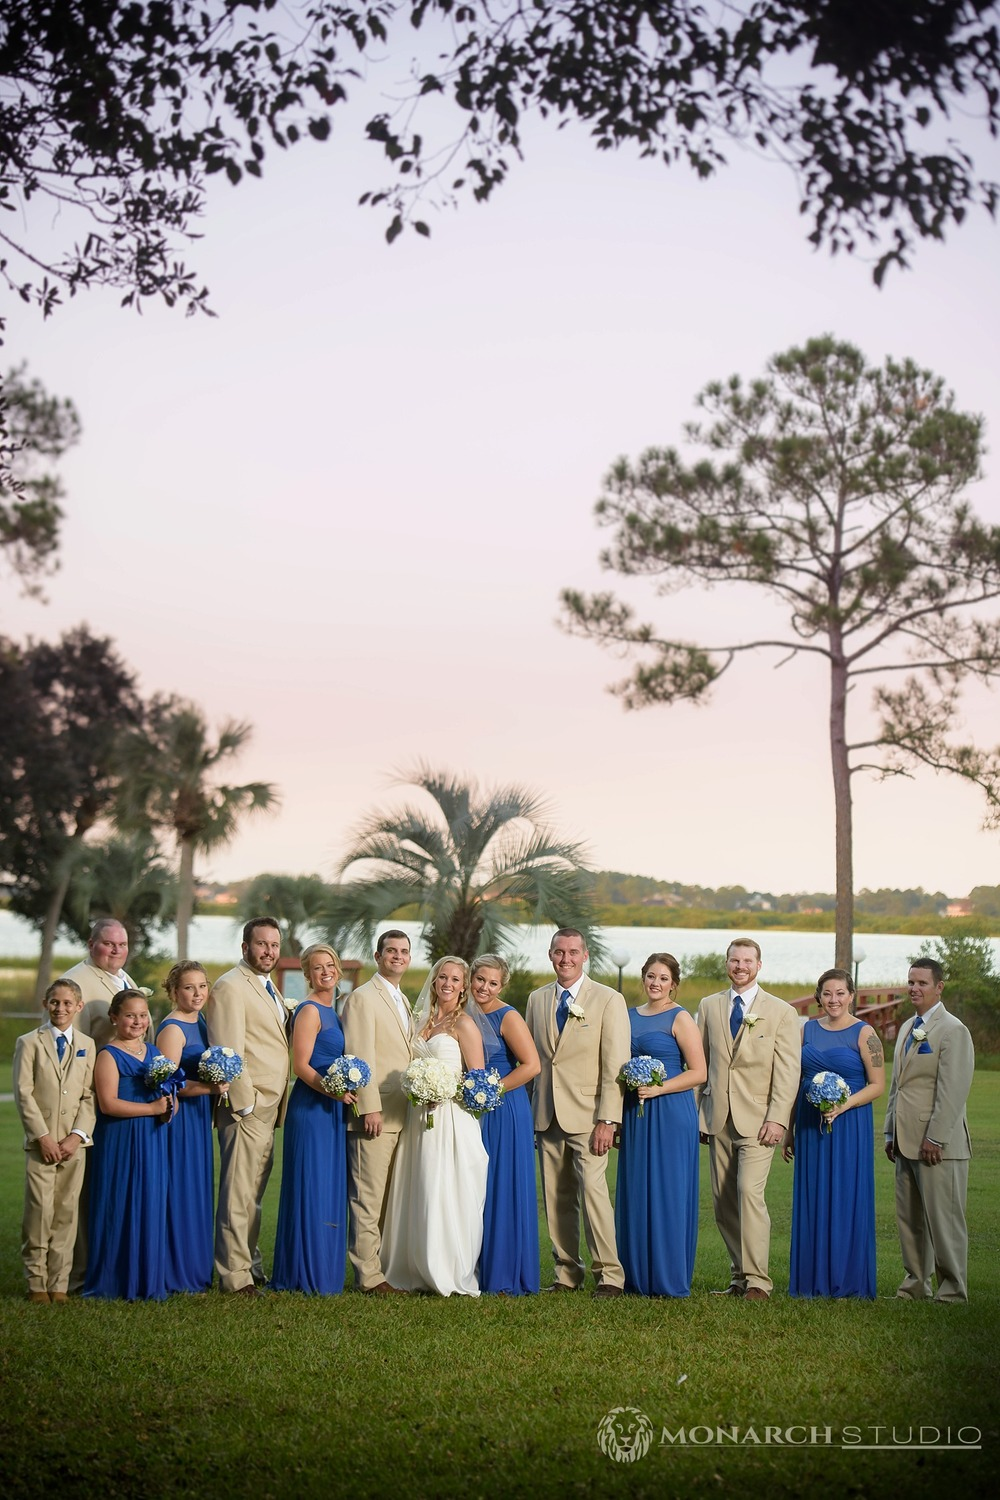 St.-Augustine-Wedding-Photographer-Monarch-Studio_0053.jpg